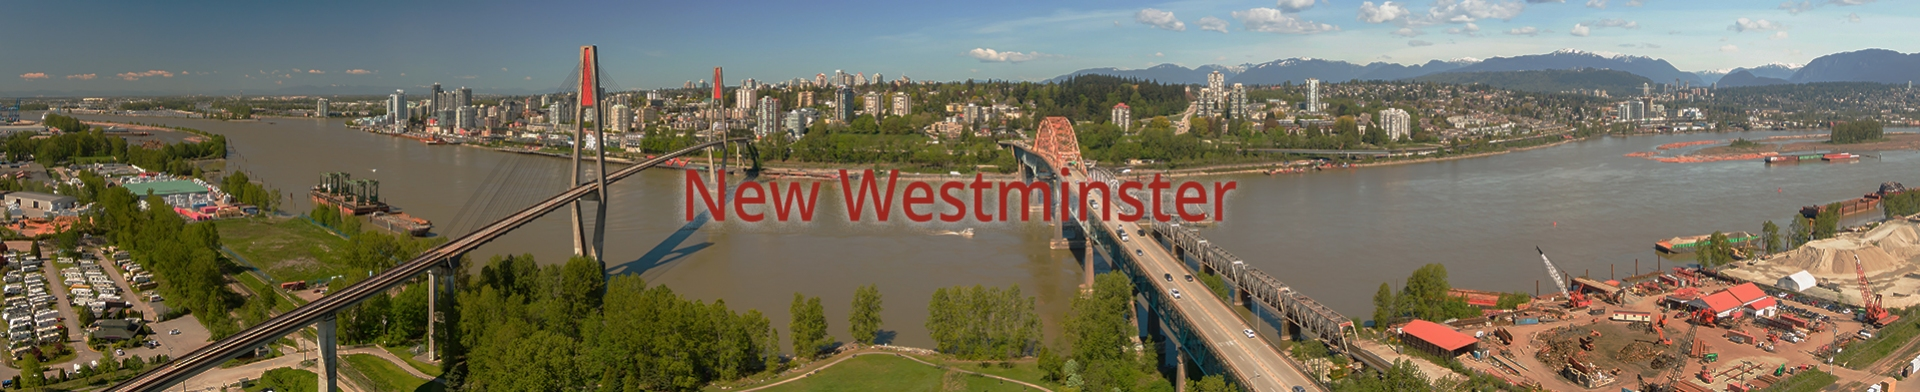 notary-public-services-new-westminster